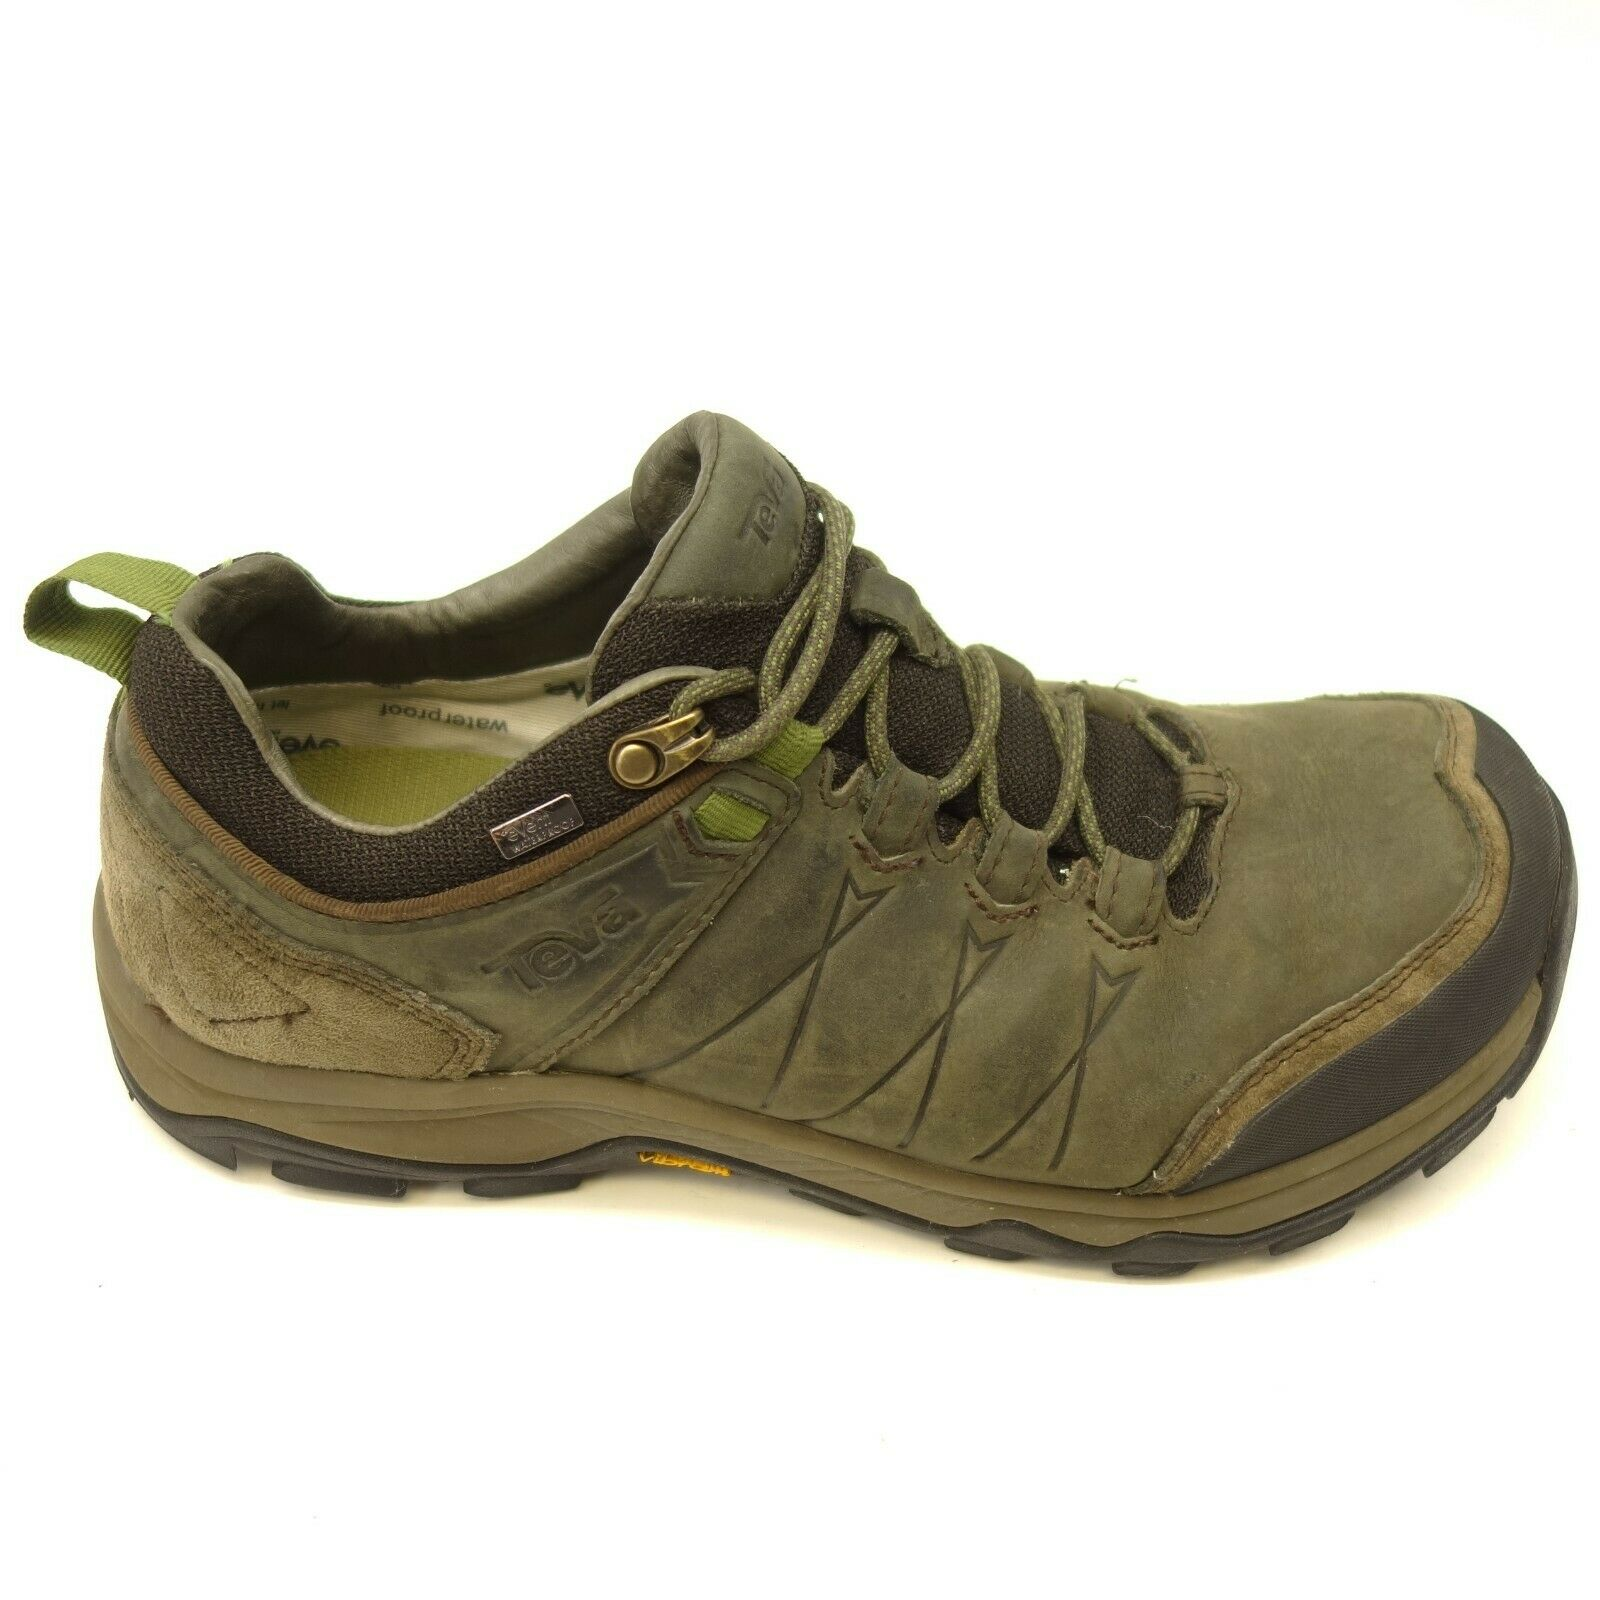 dd8a6c0a2731b3 Teva Arrowood Riva Sz 9 eVent Waterproof Athletic Hiking Trail Mens shoes